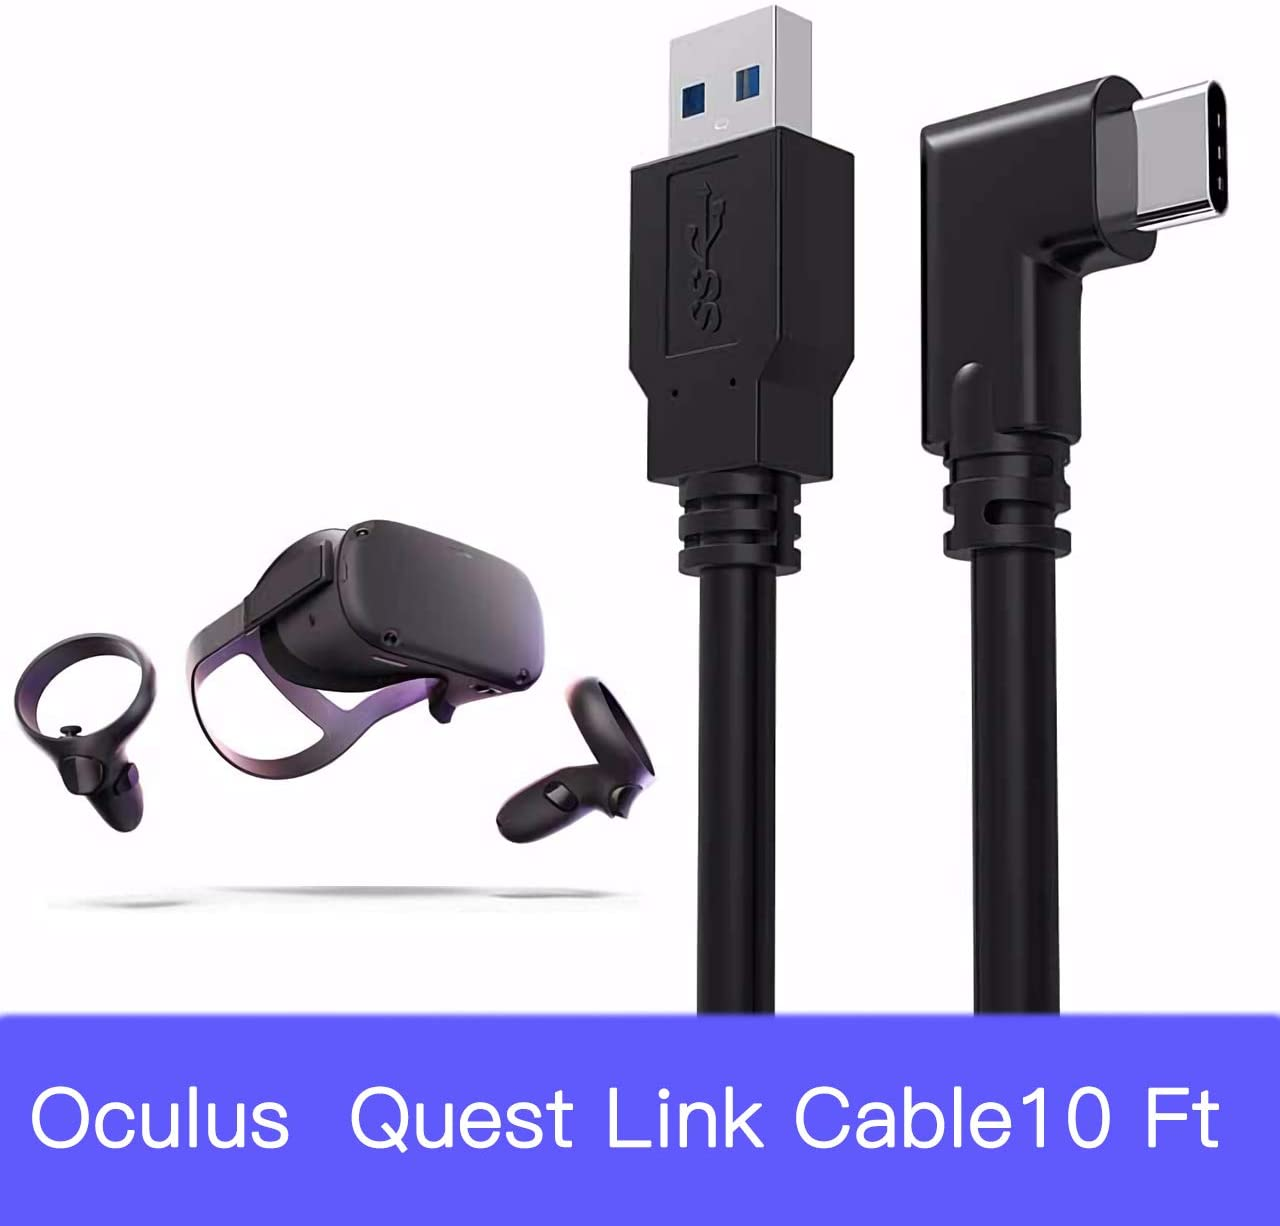 Quest Linke Cable, AncoDirect Oculus Link Cable, High-Speed Data Transfer and Fast Charging Cable Compatible for Oculus Quest and More